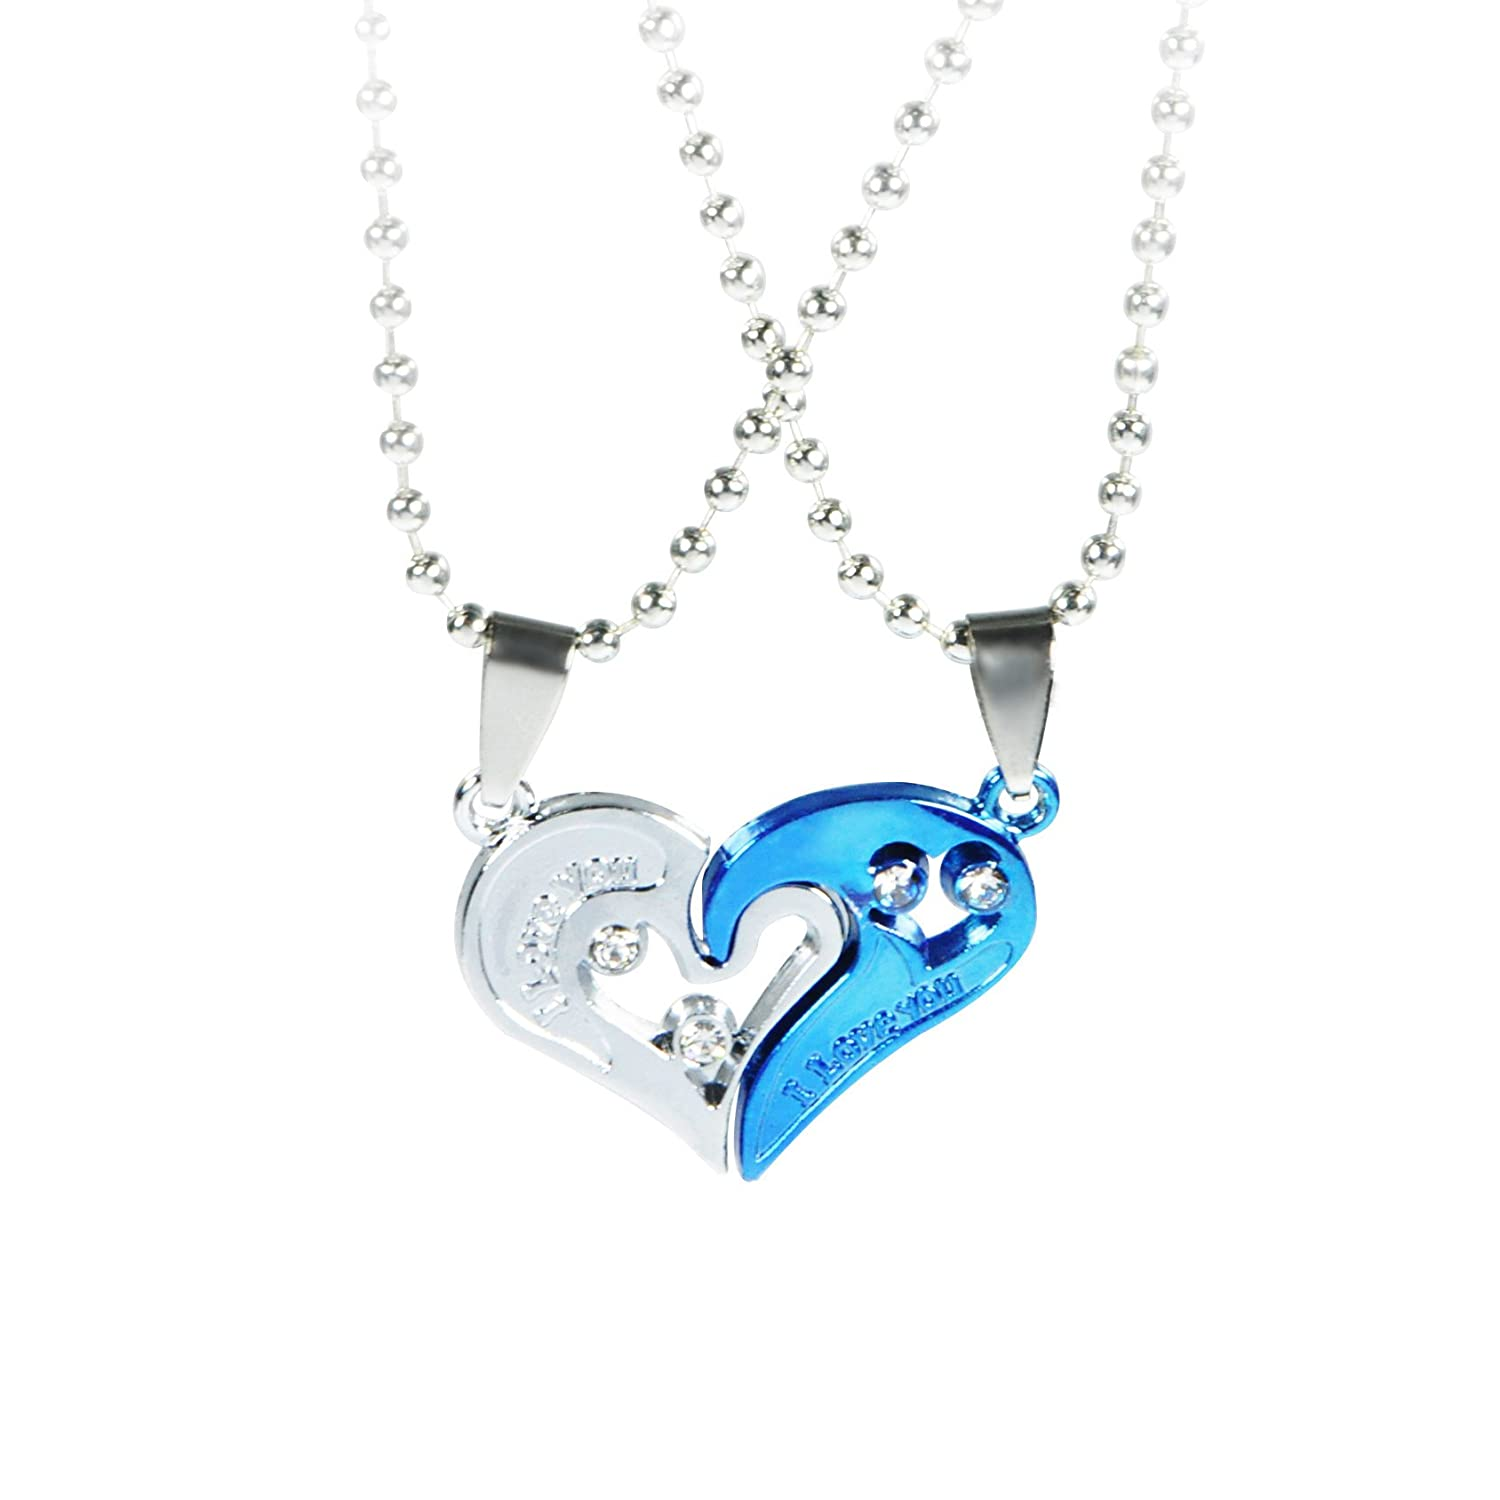 Blue-Silver Elechobby Valentines Day Lover Couple Pendant Necklace Love Heart I Love You Puzzle Matching